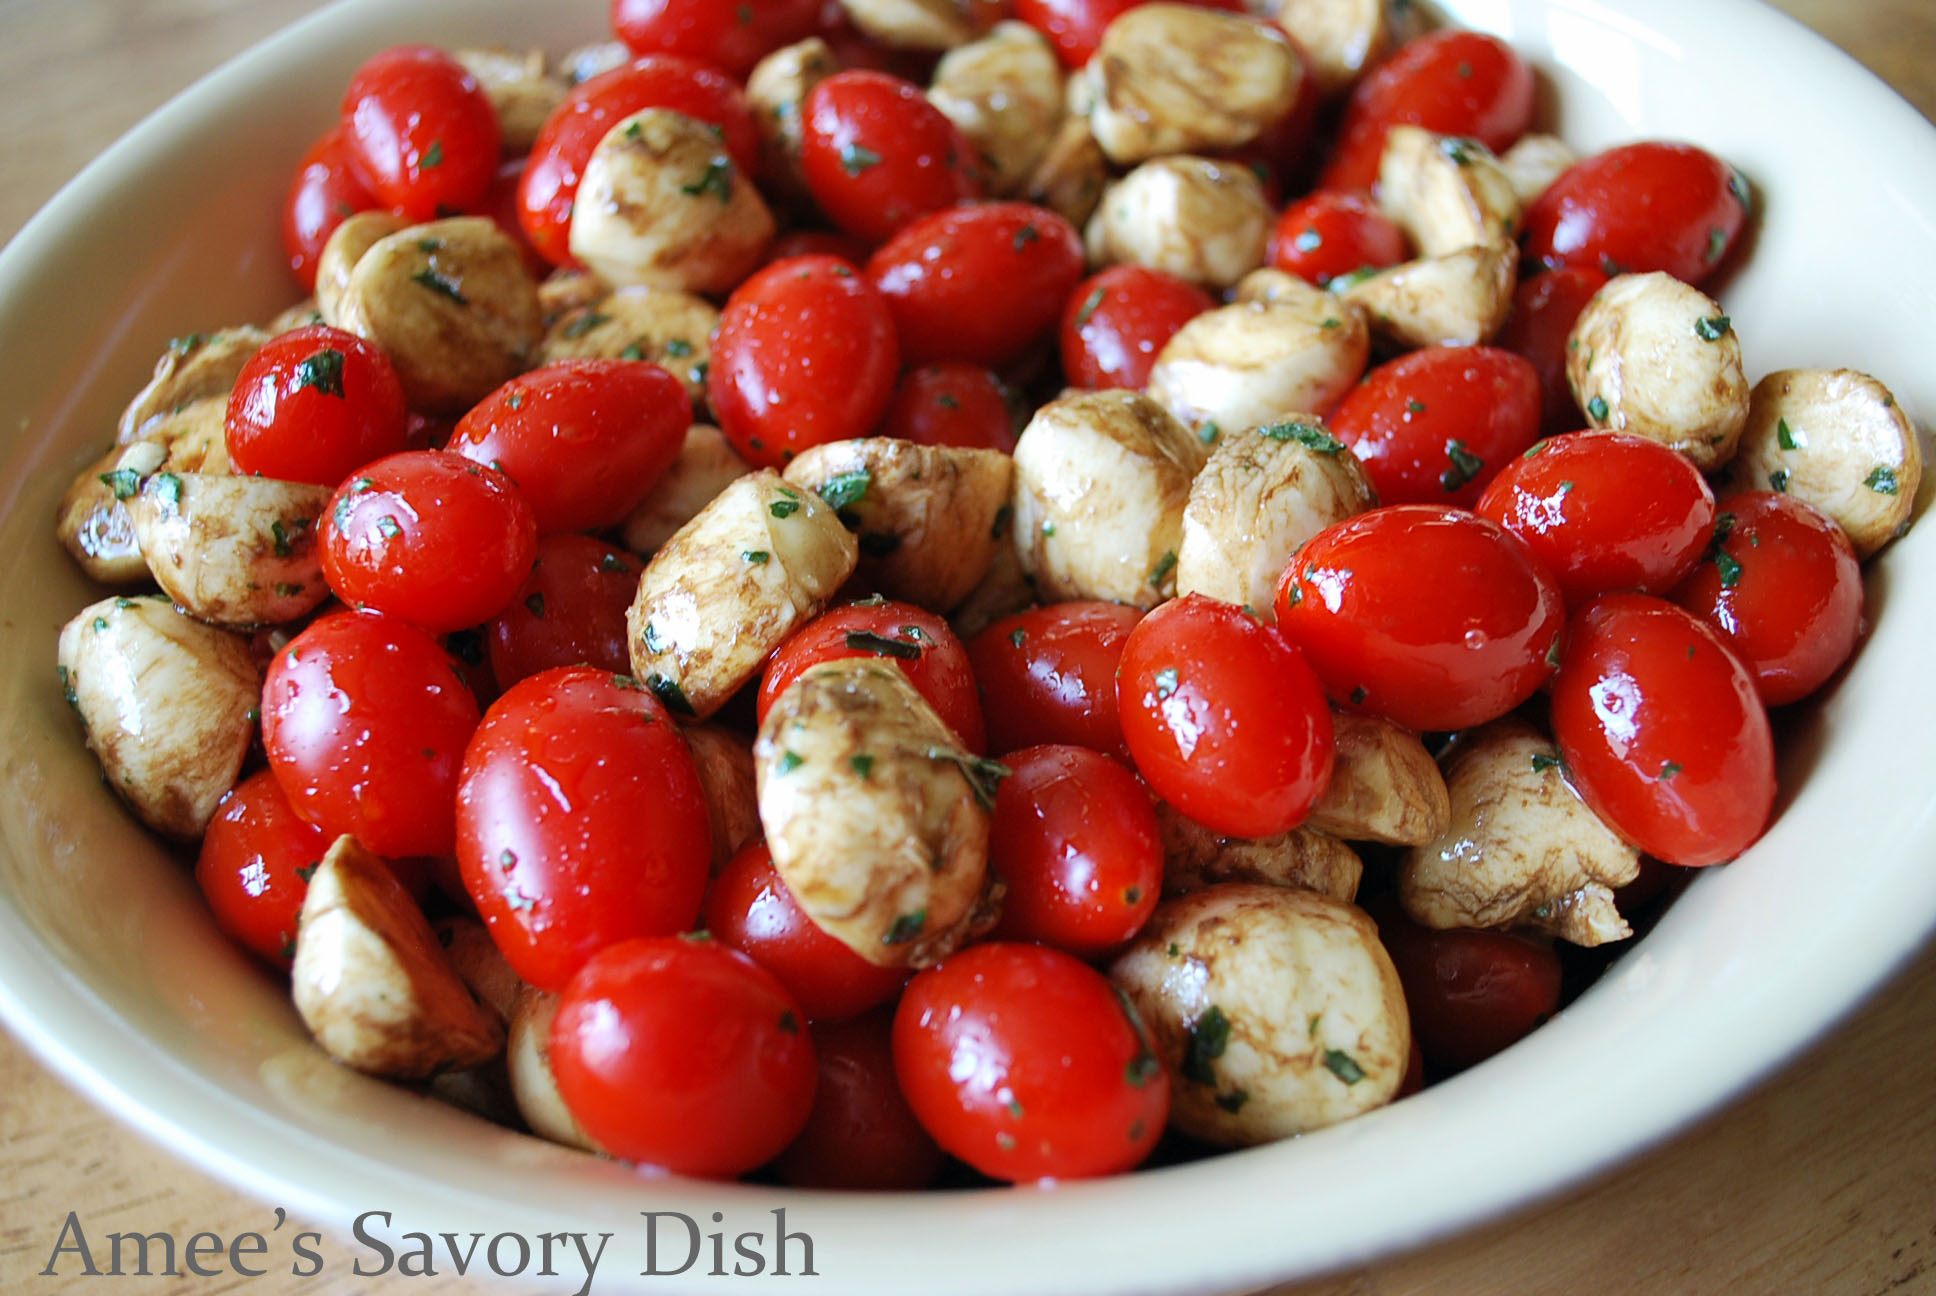 Caprese salad is a healthy summer salad, with fresh garden tomatoes, fresh basil, and fresh mozzarella cheese.